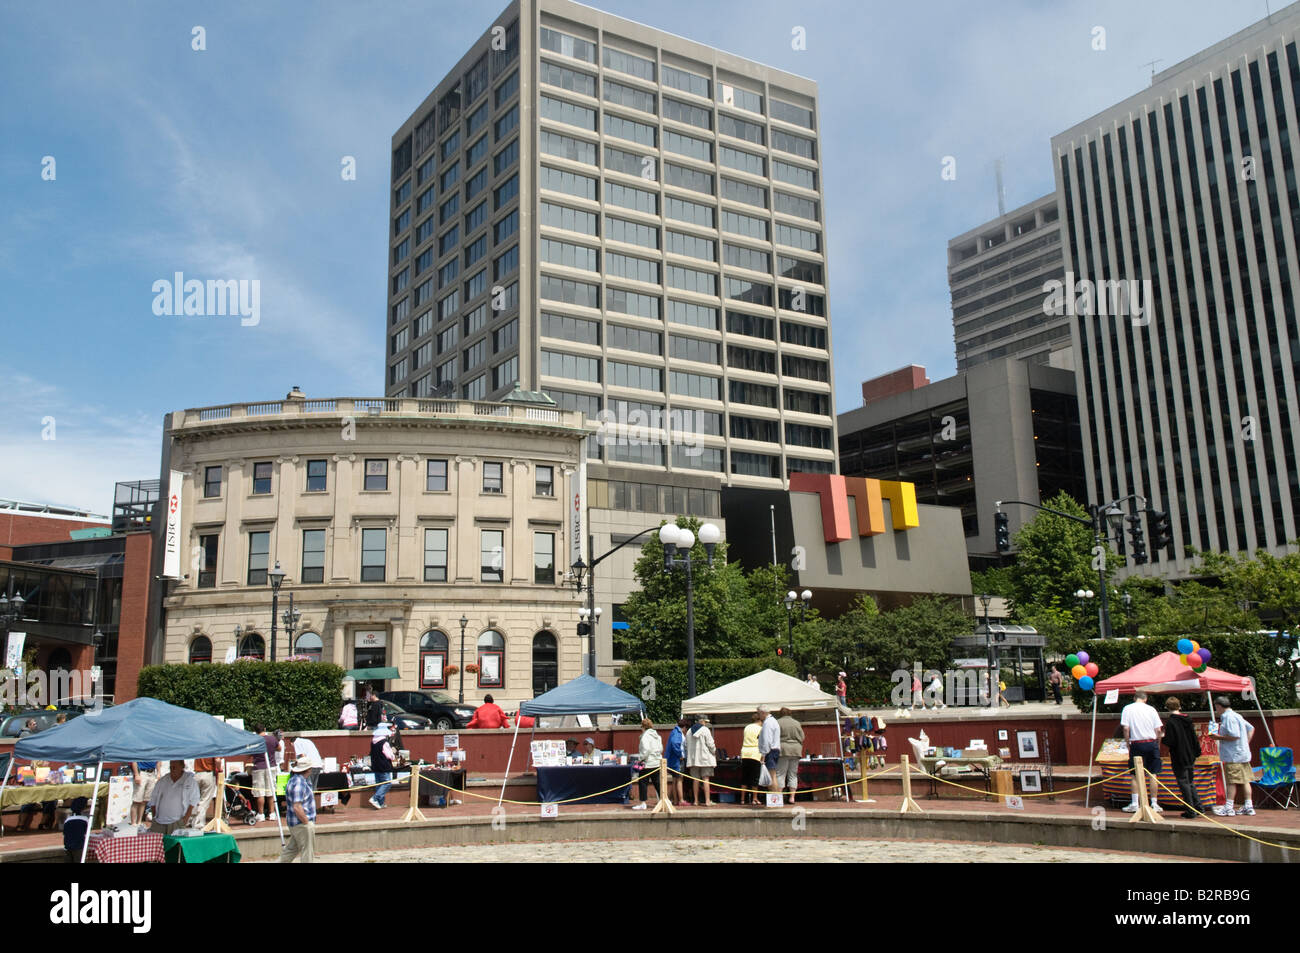 Downtown Saint John with City Hall on a sunny summer day - Stock Image